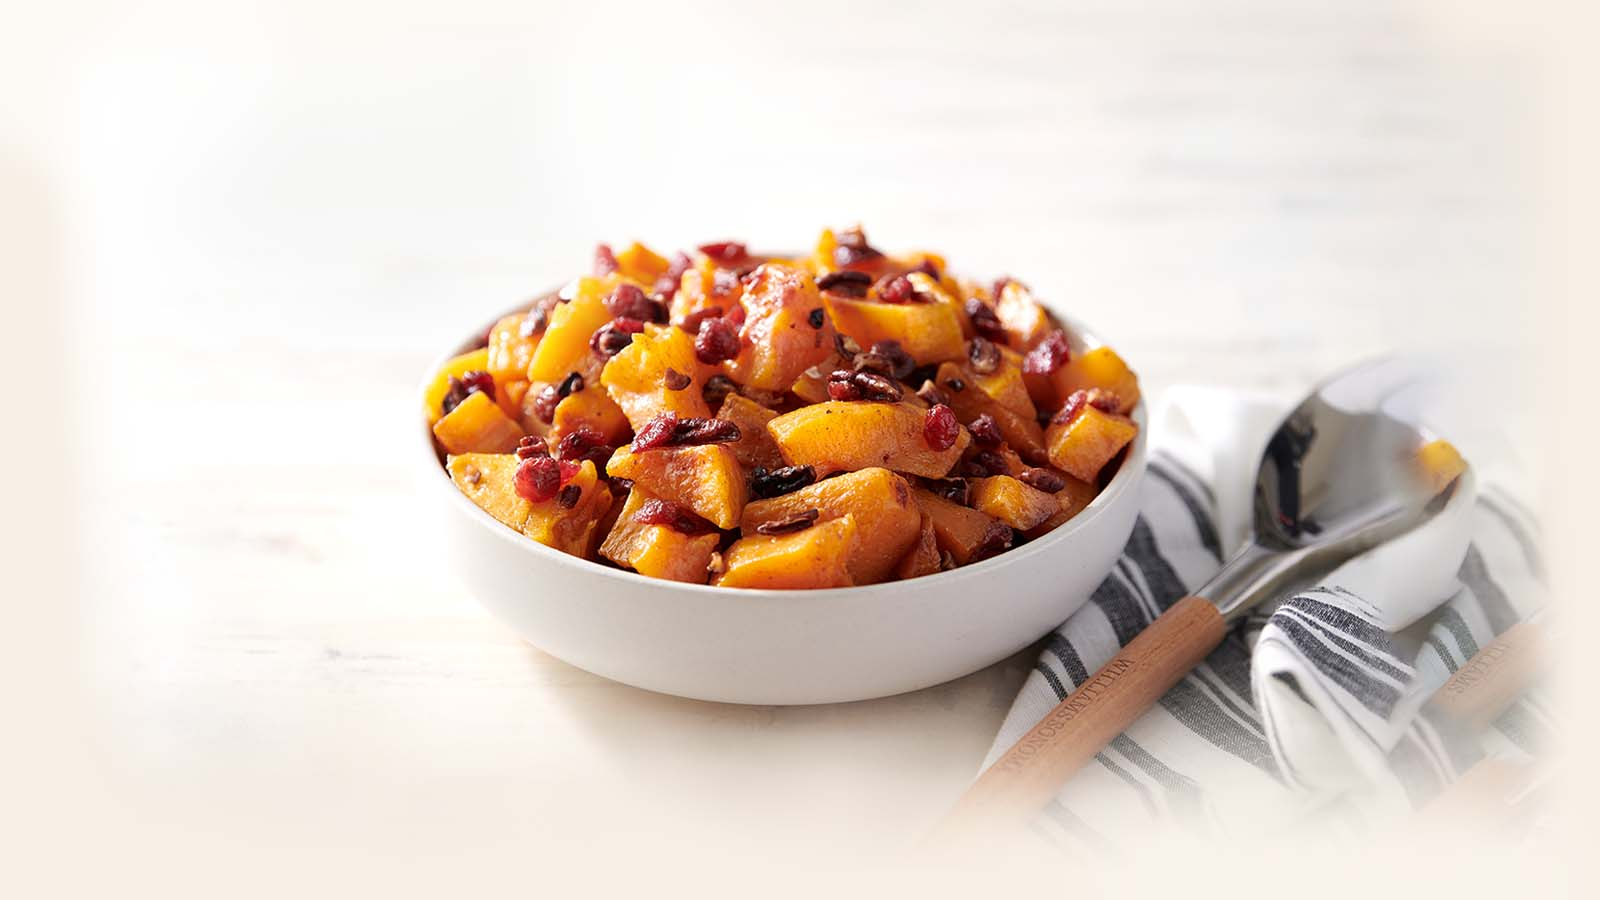 Butternut Squash with Pecans and Cranberries